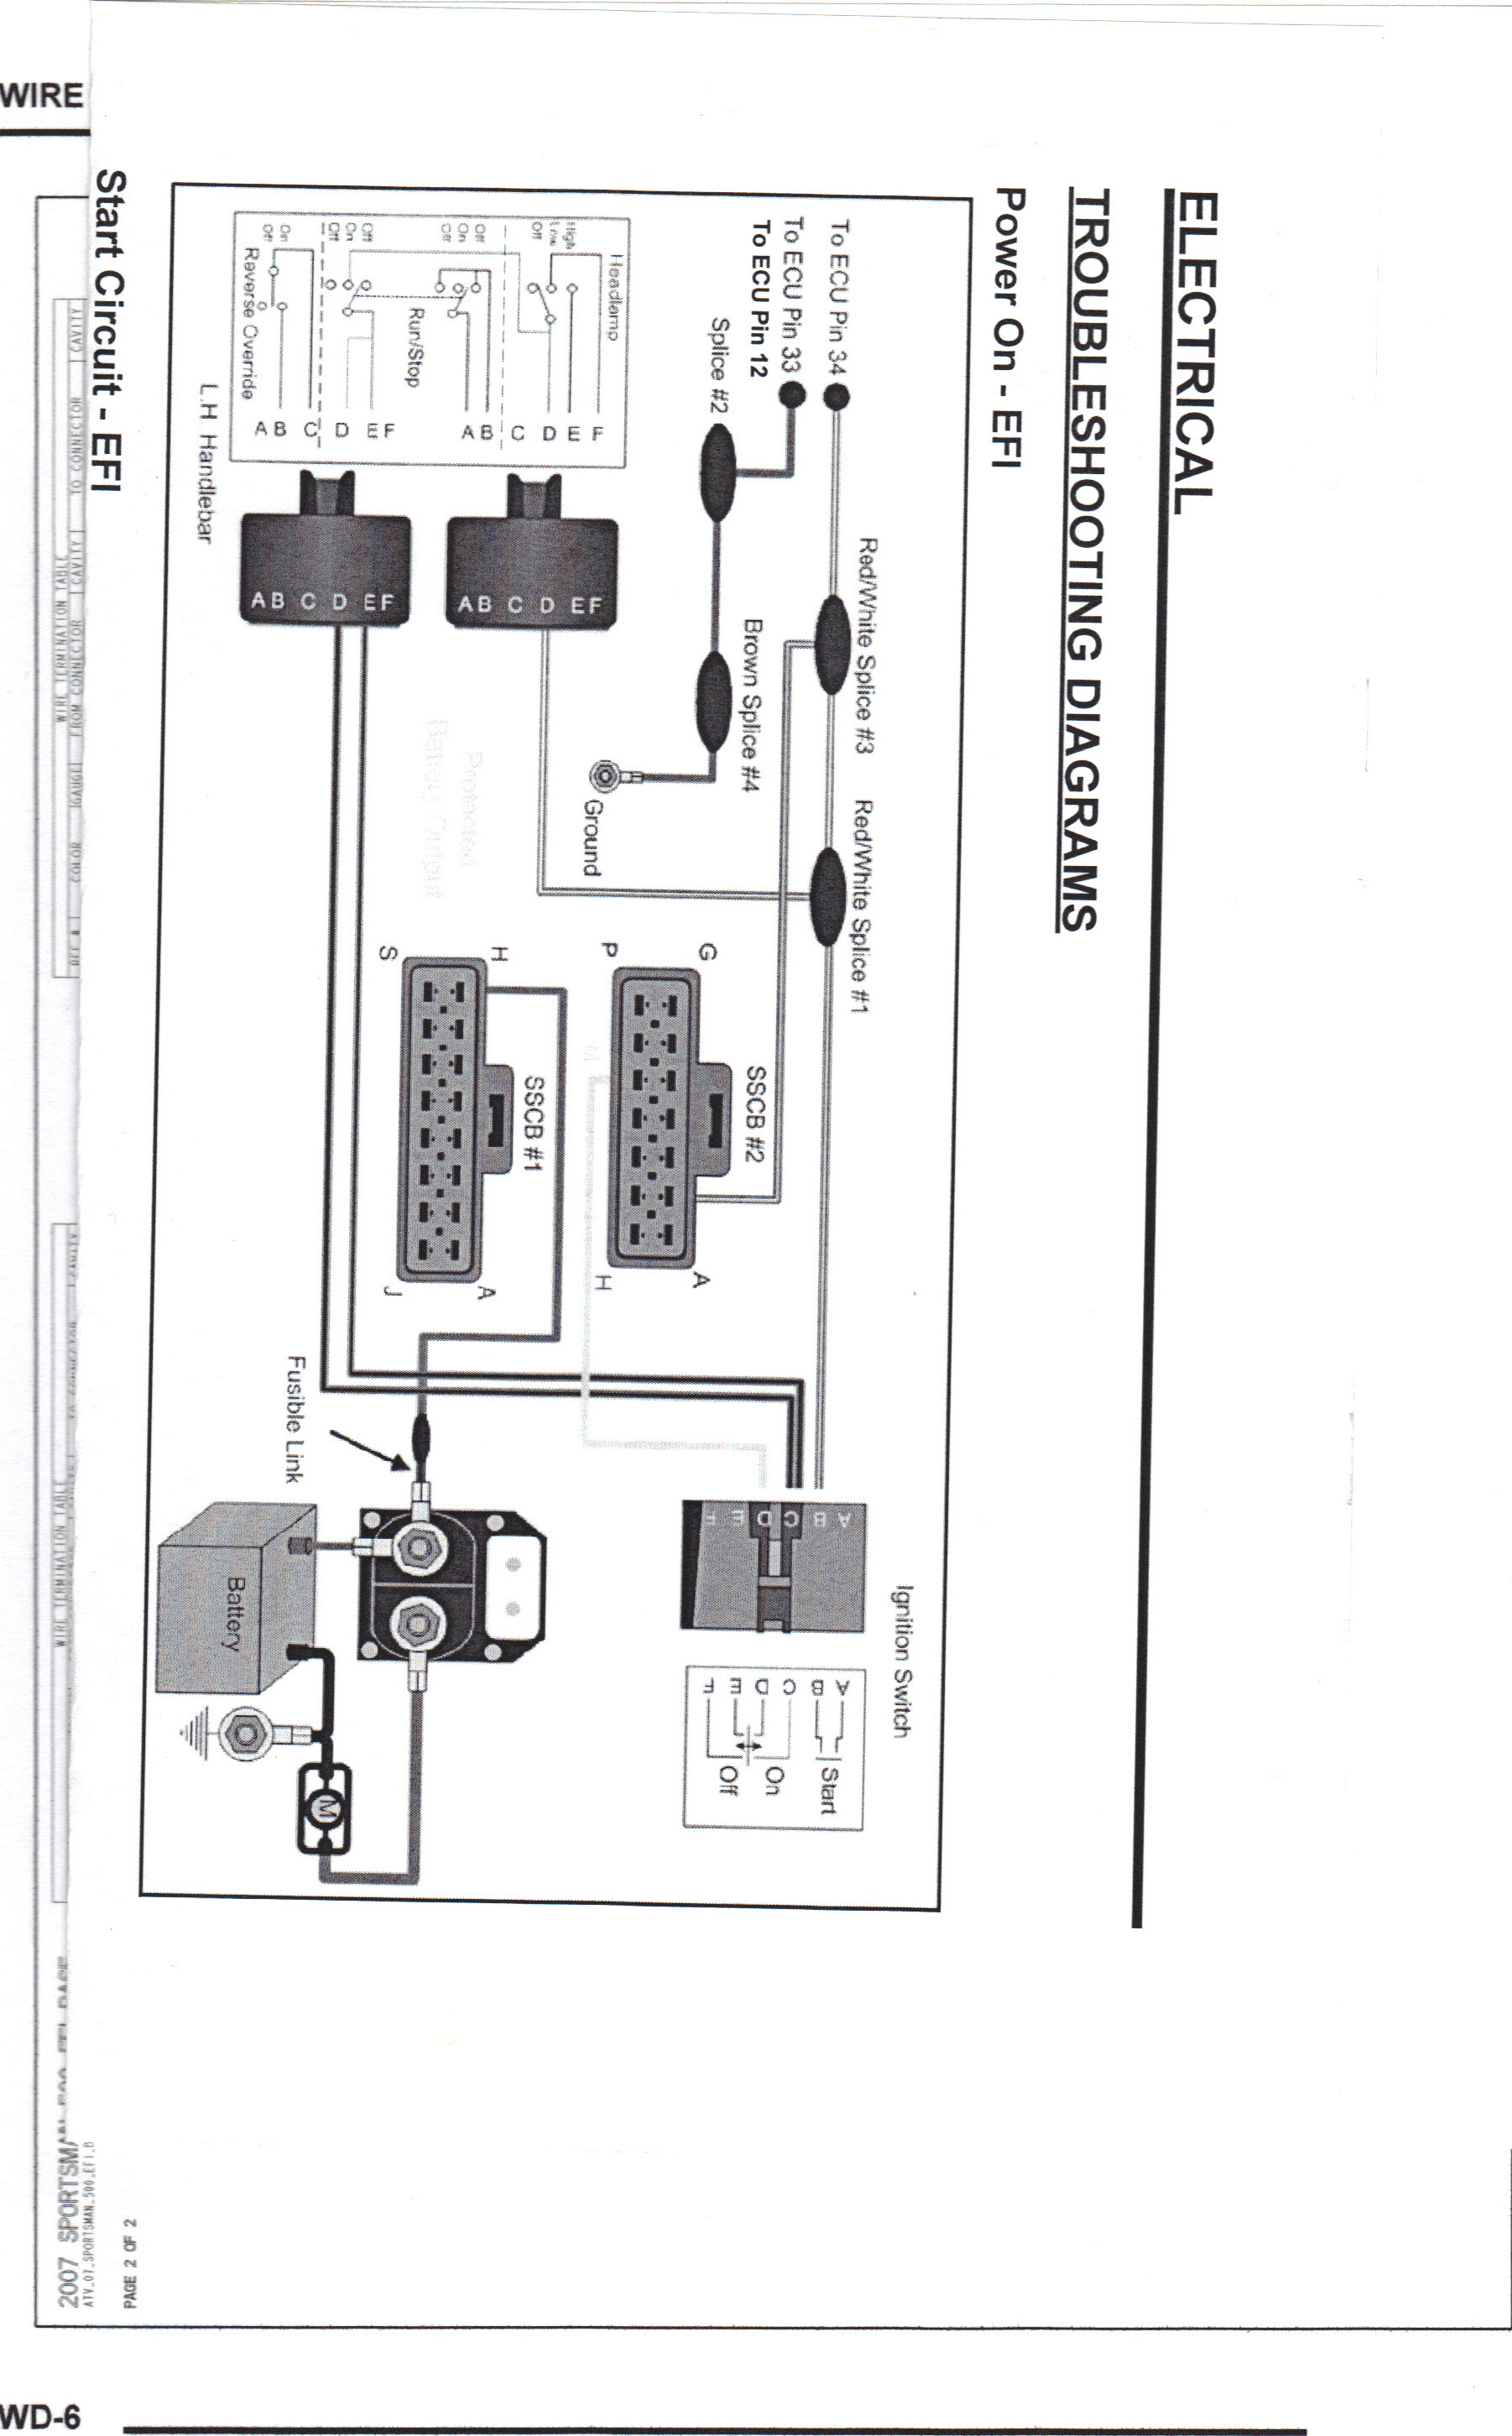 hight resolution of 2002 polaris wiring diagram wiring library2005 polaris sportsman 500 ho wiring diagram schematic diagrams rh ogmconsulting